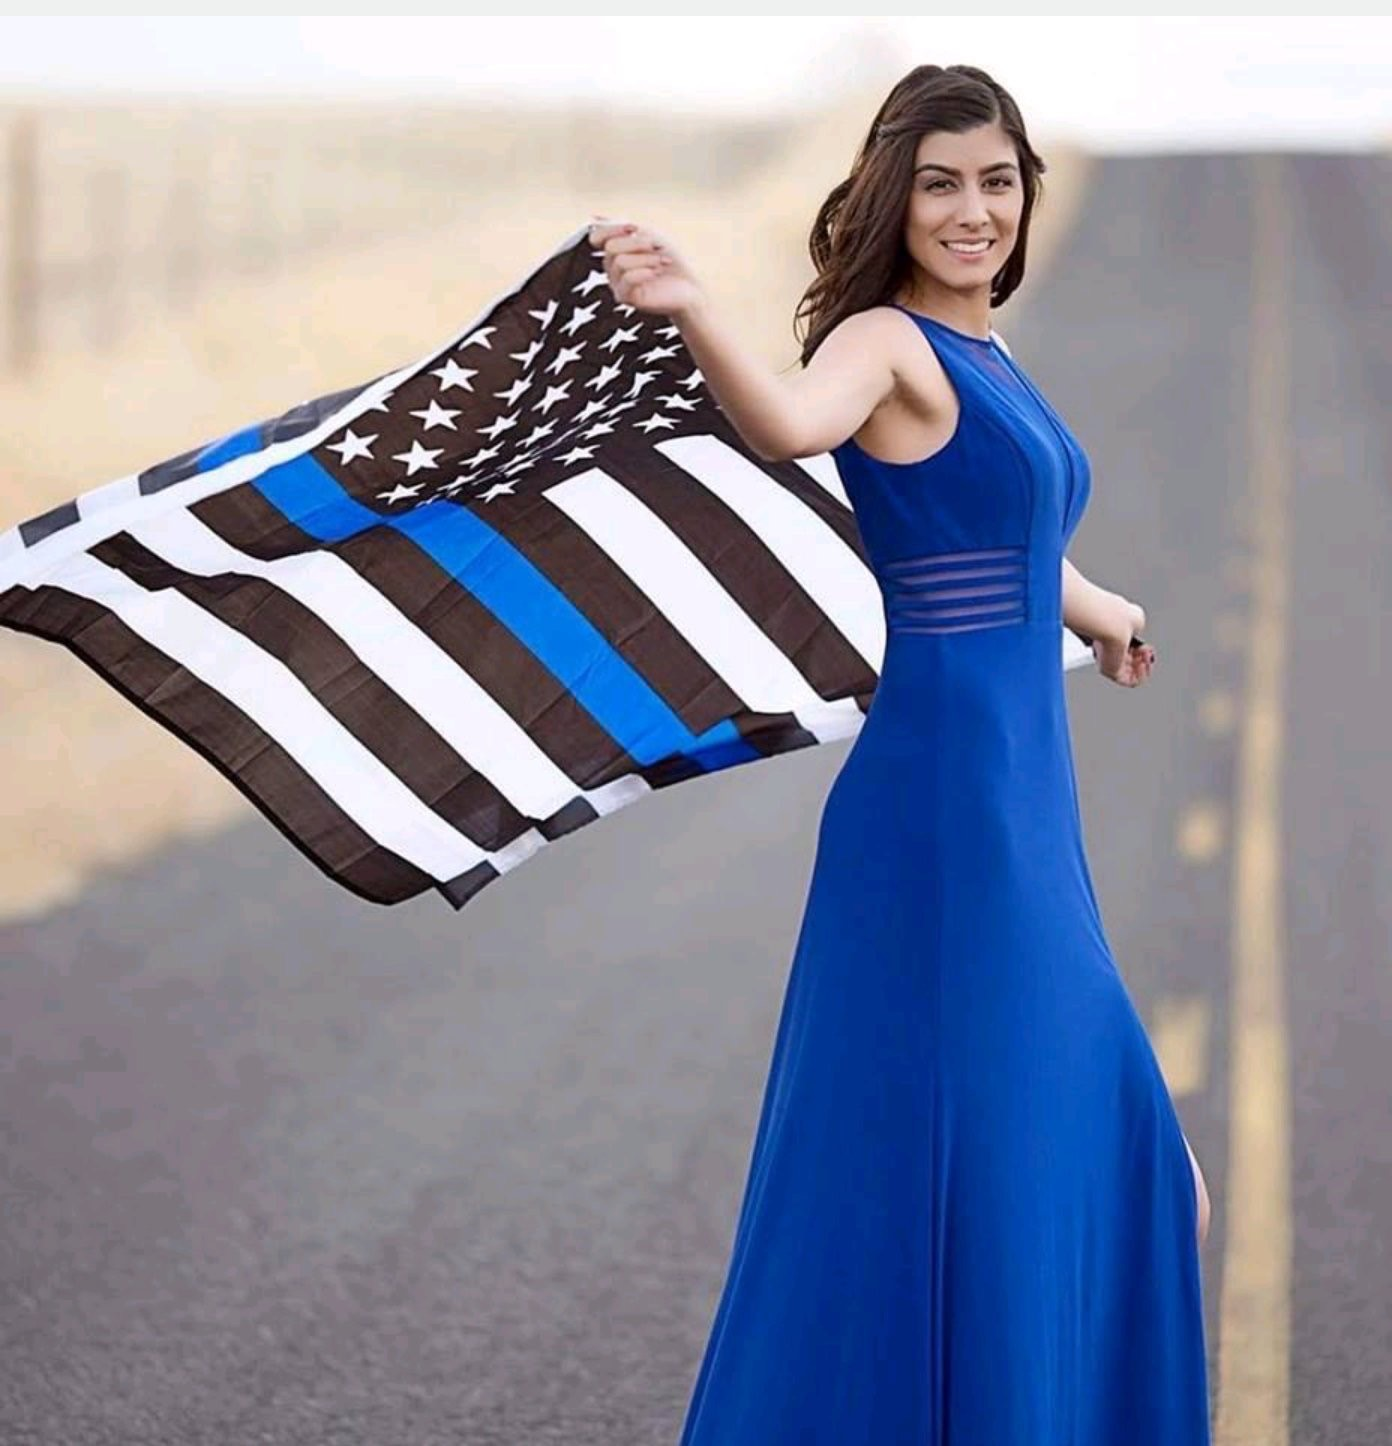 Police Officer Natalie Becky Corona | Davis Police Department, California